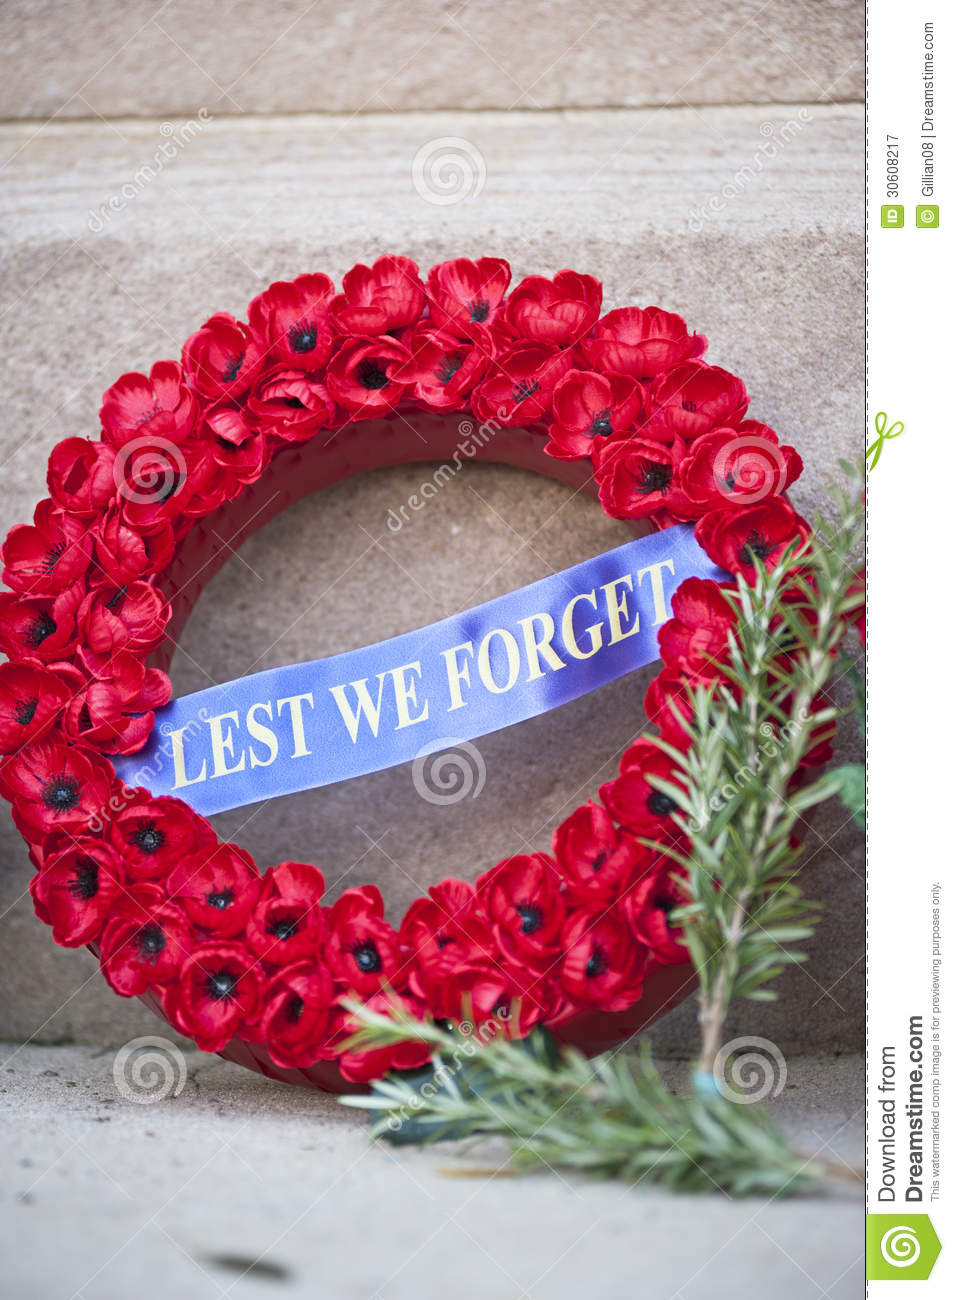 Royalty Free Stock Photography: Anzac day wreath. Image: 30608217